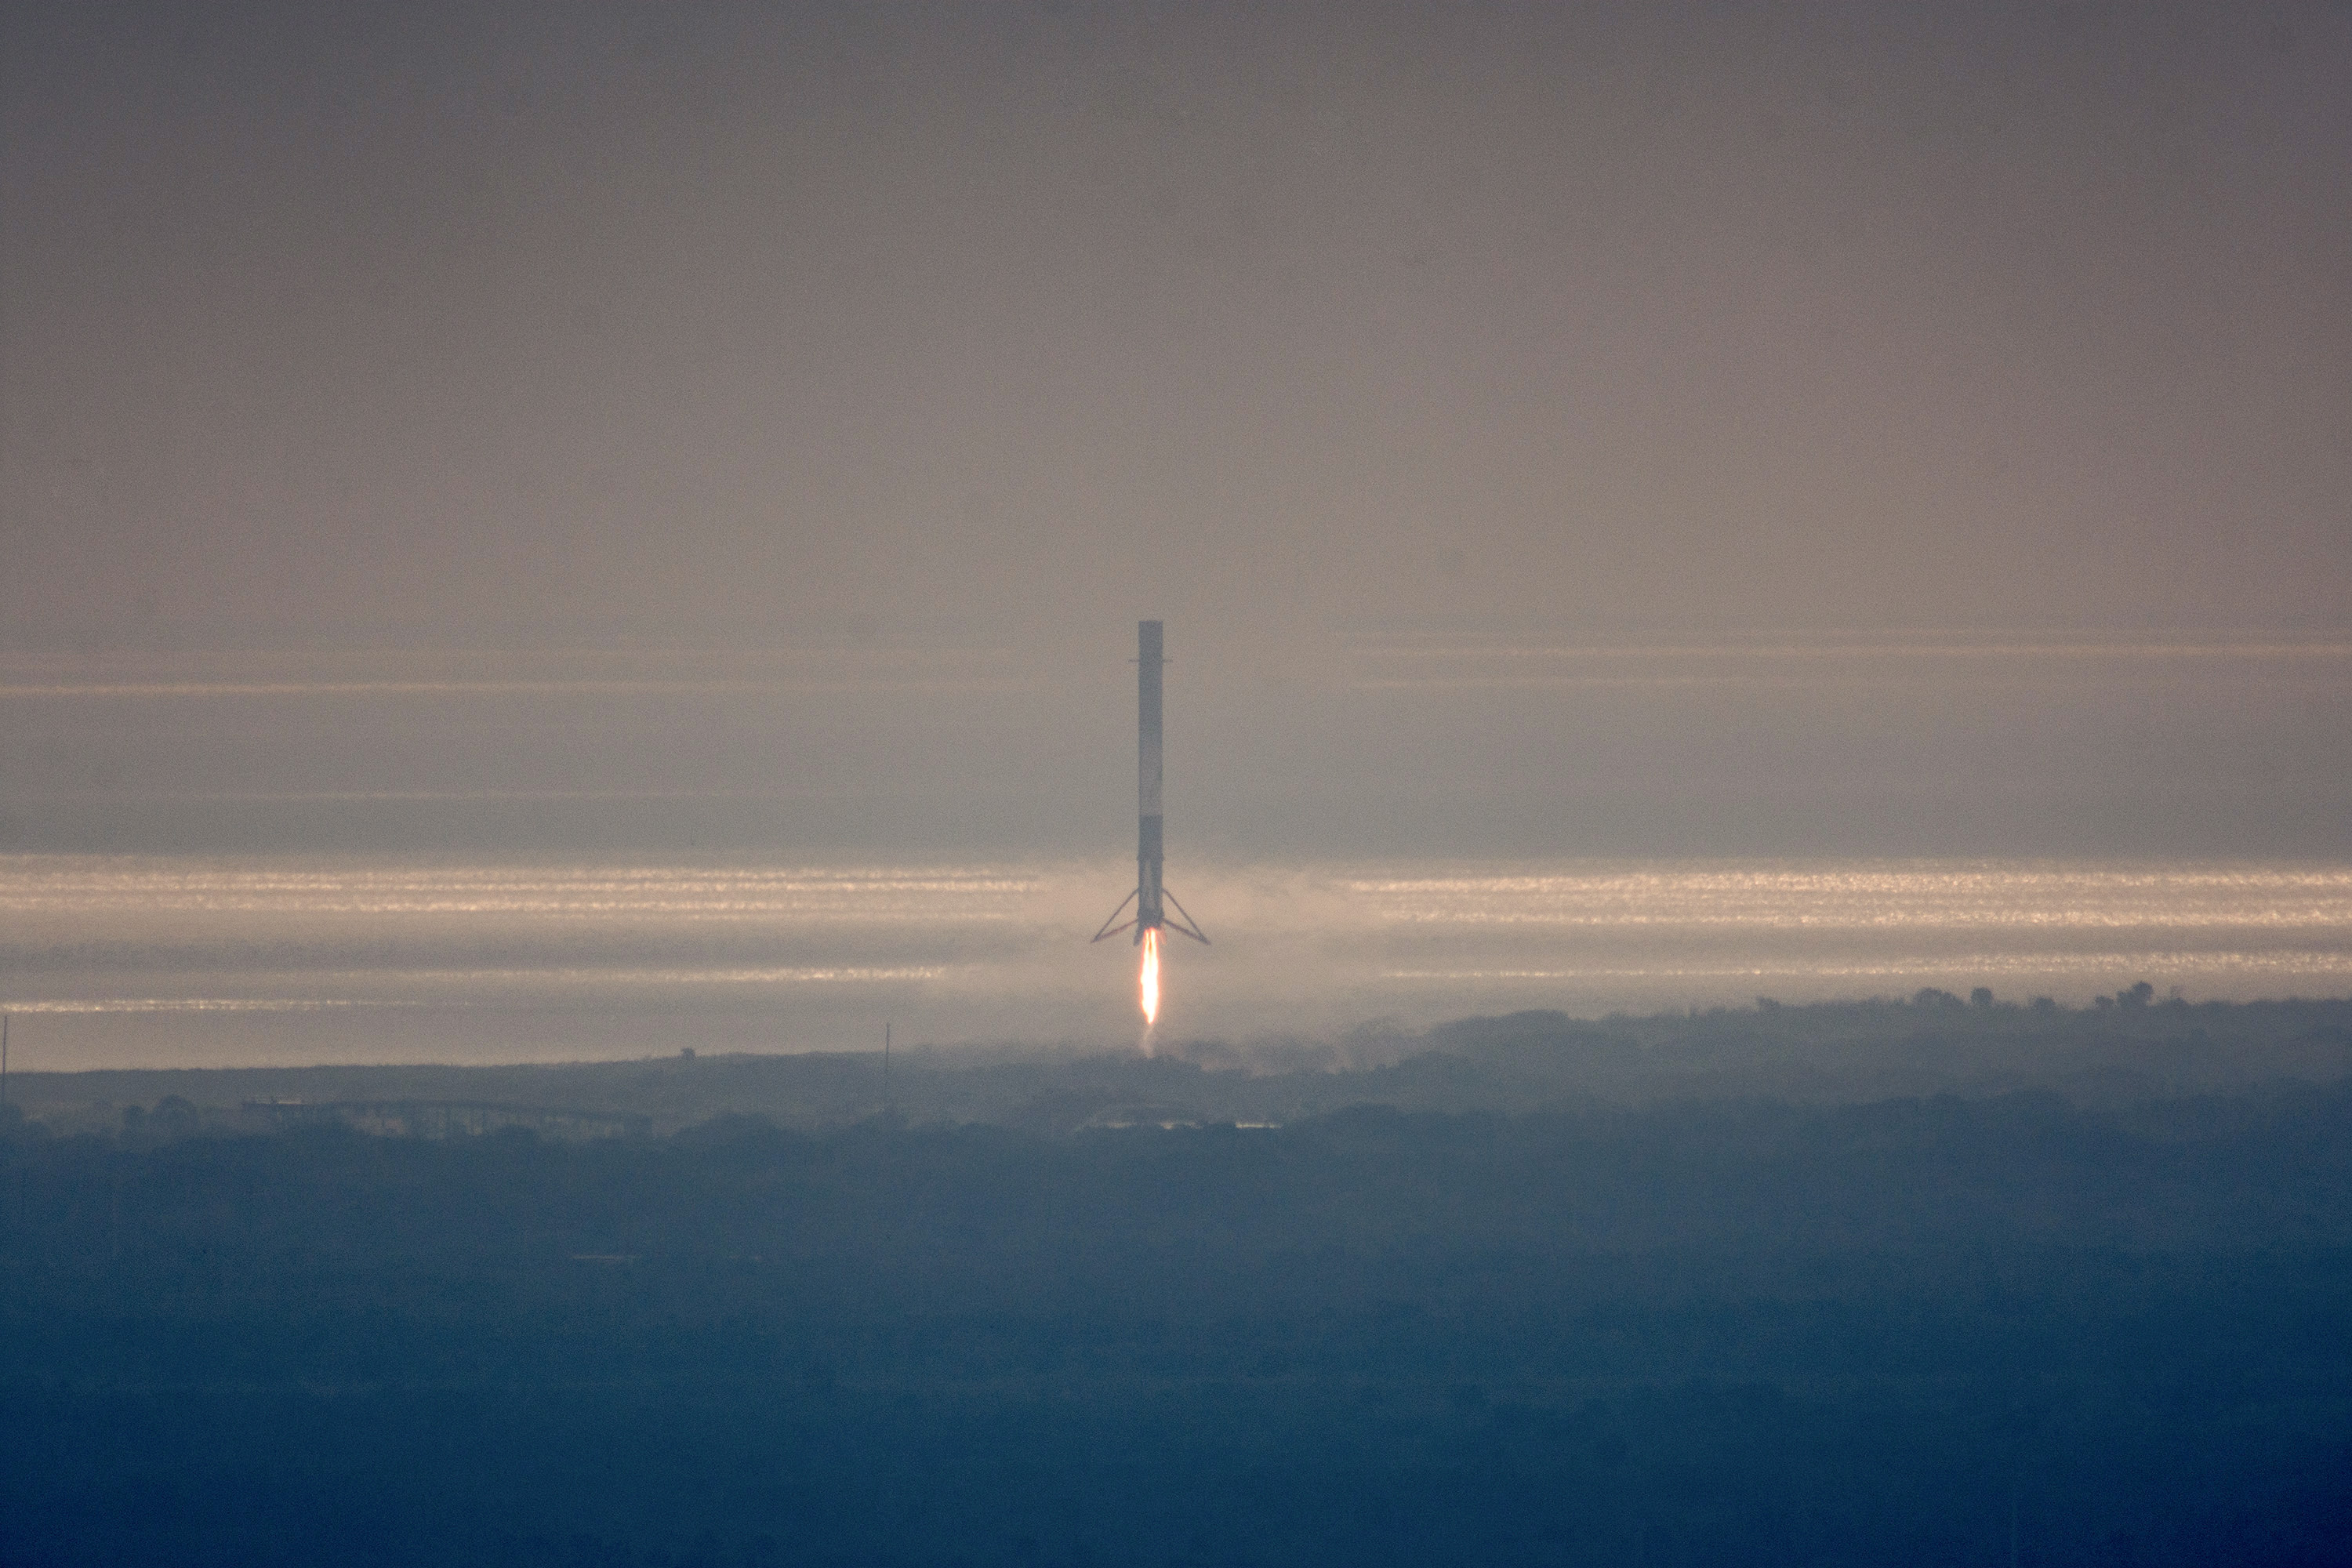 In Photos: SpaceX's 1st Launch from NASA's Historic Pad 39A